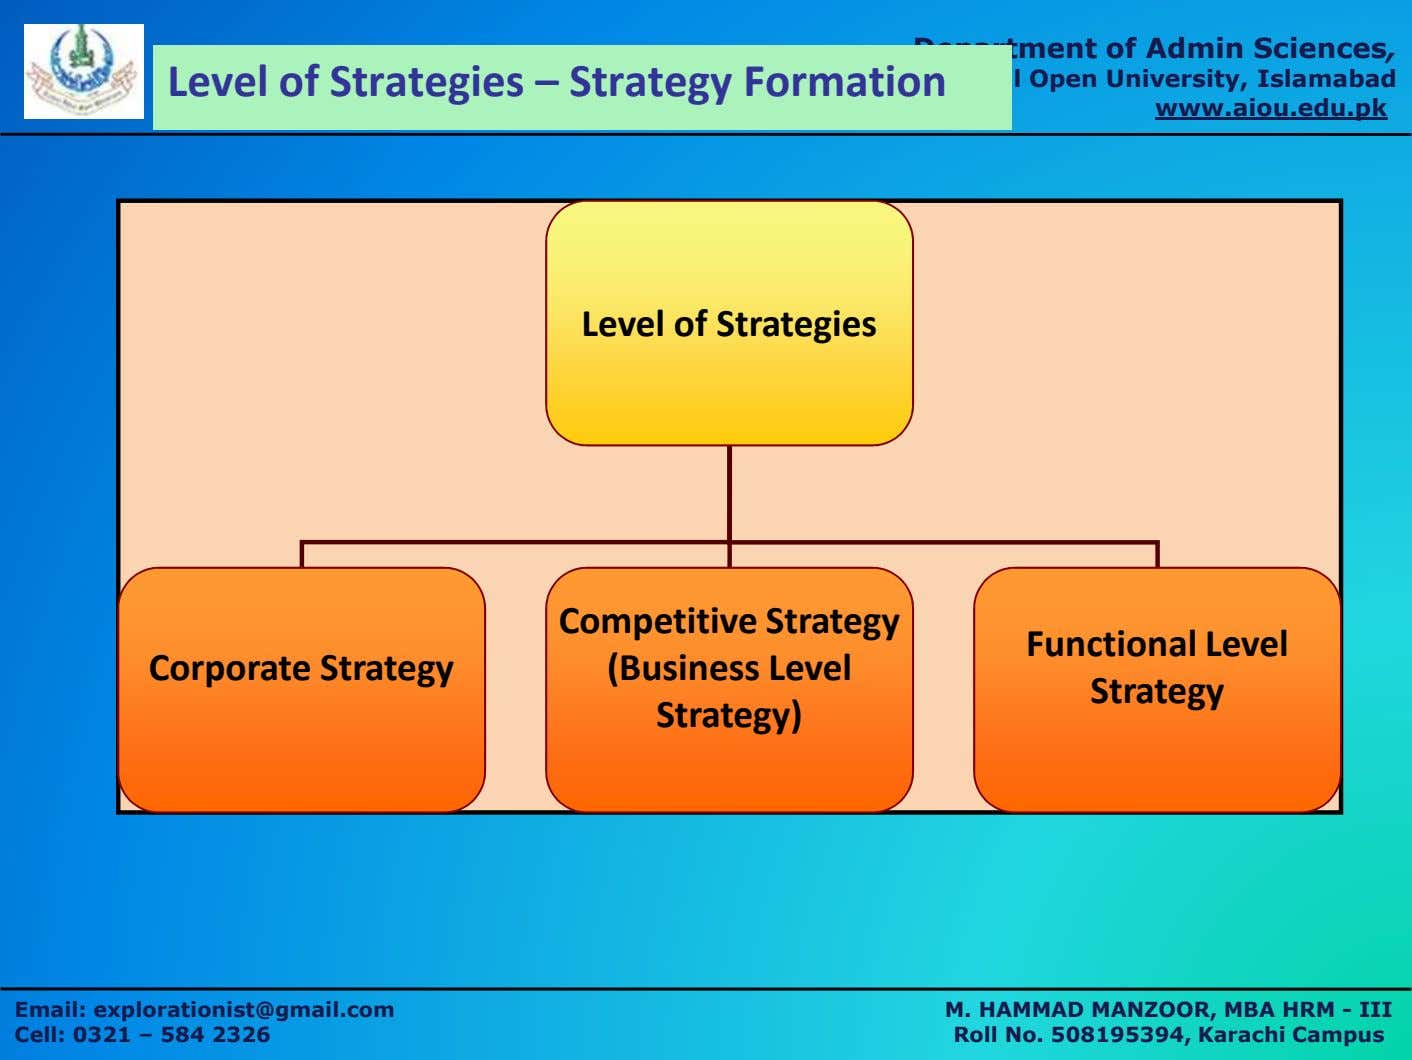 Department of Admin Sciences, Level of Strategies – Strategy Formation Allama Iqbal Open University, Islamabad